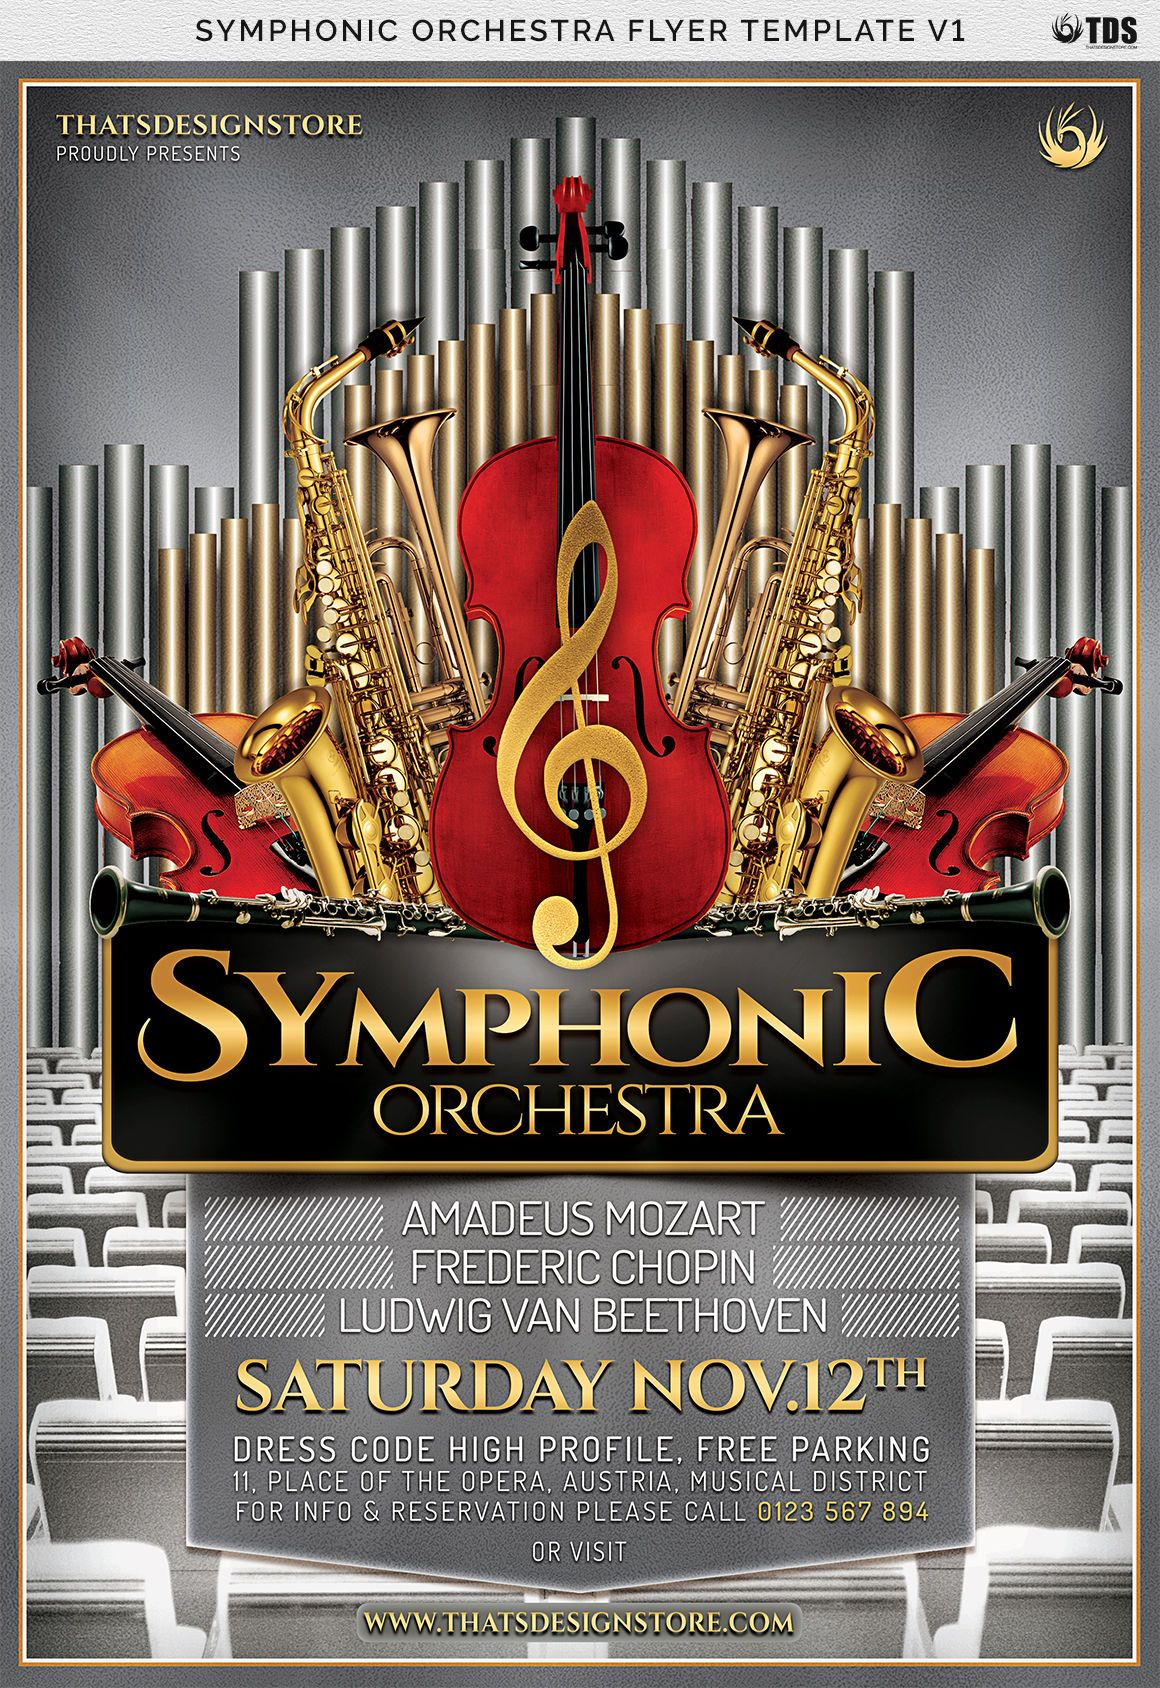 Symphonic Orchestra Flyer Template V1 By Thats Design